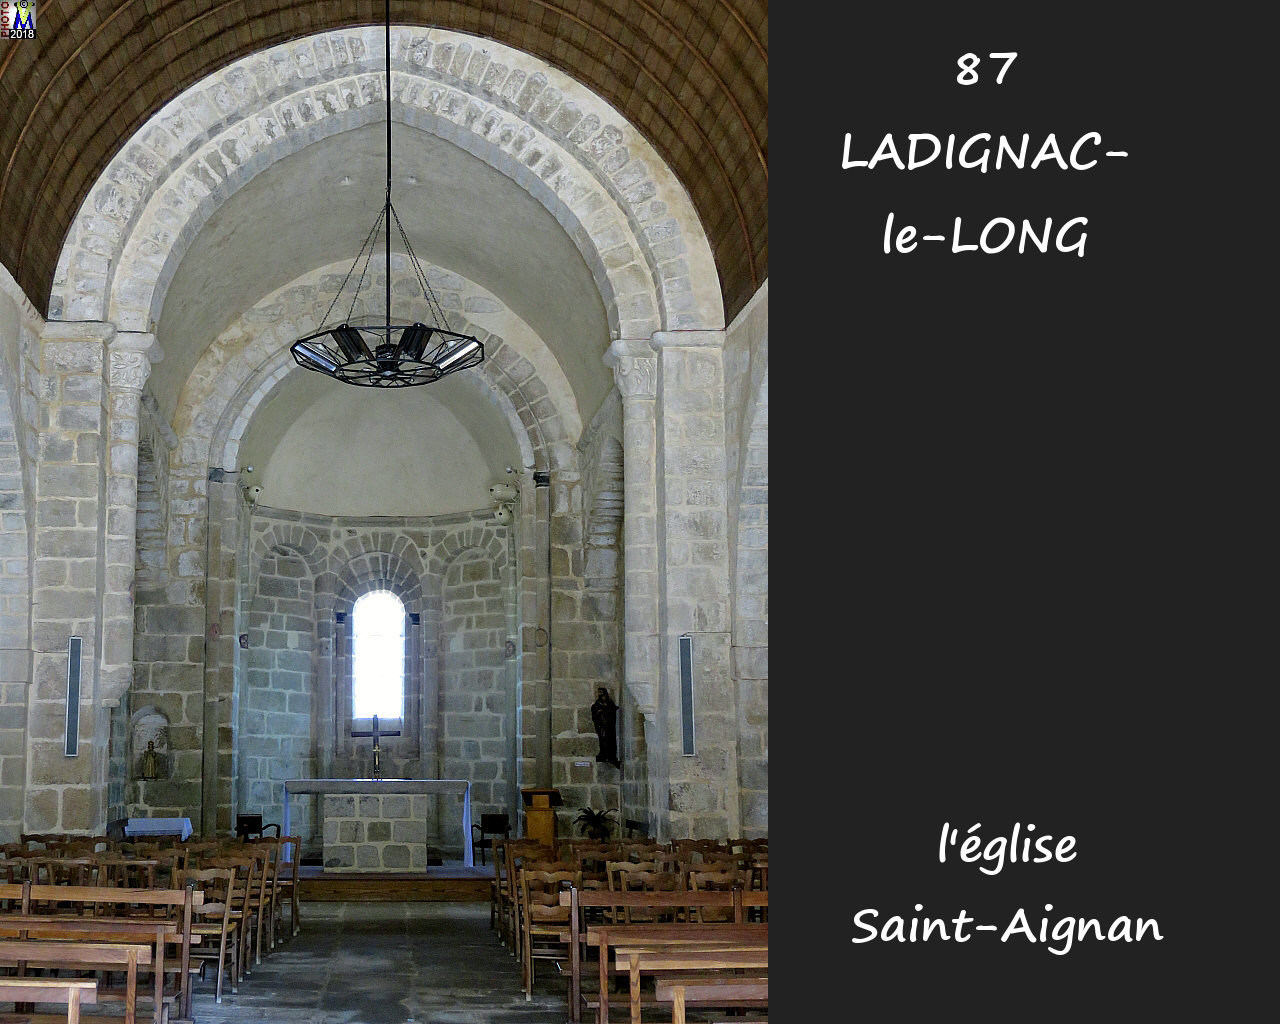 87LADIGNAC-LONG_eglise_210.jpg